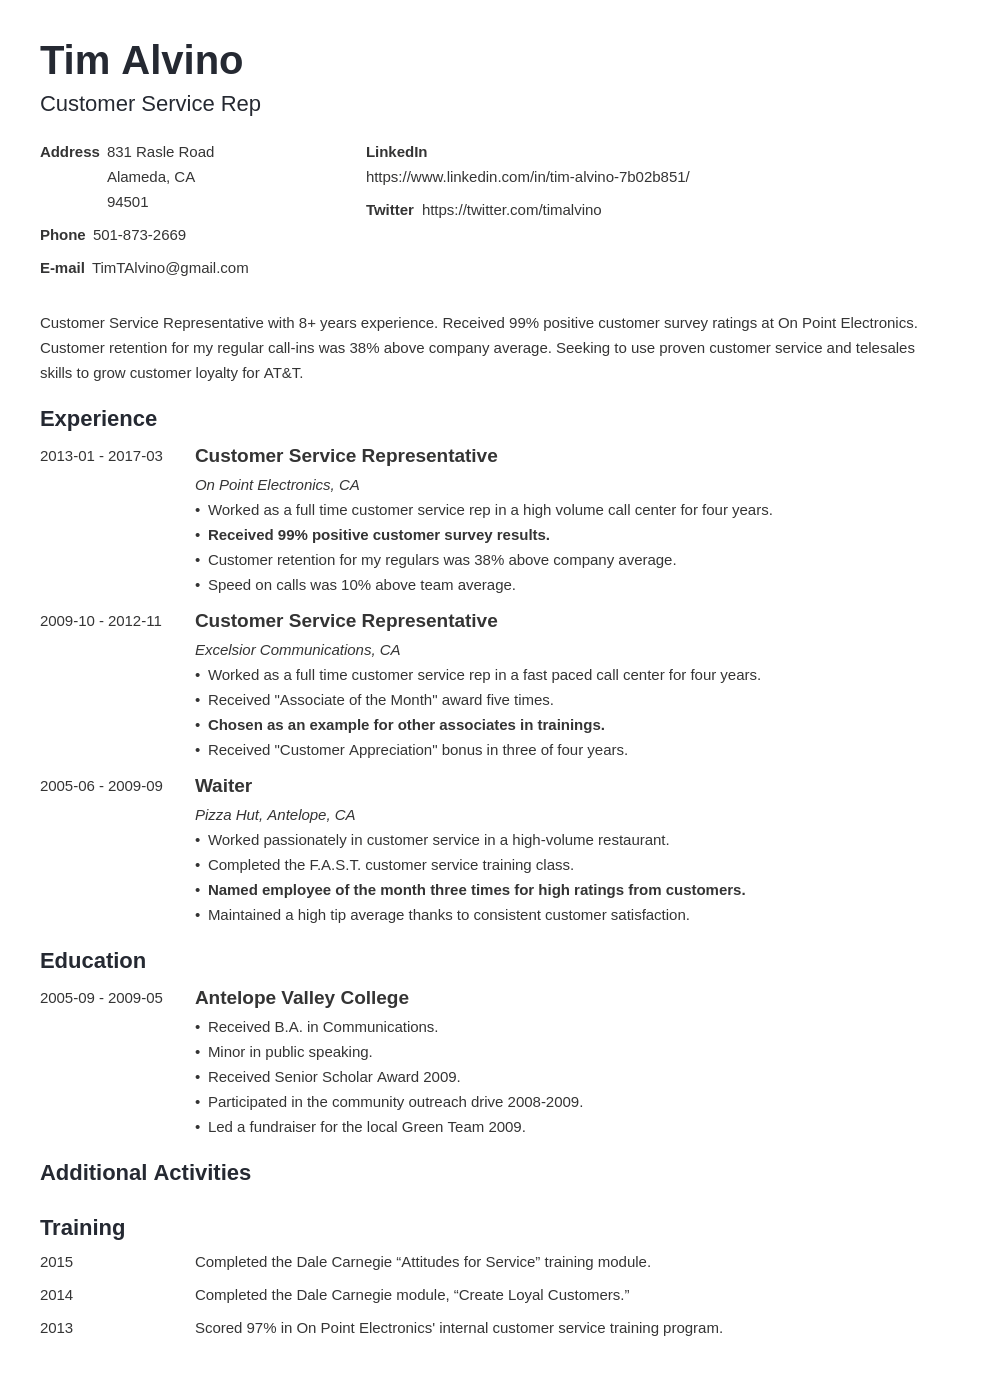 Customer Service Representative Resume Examples 2020